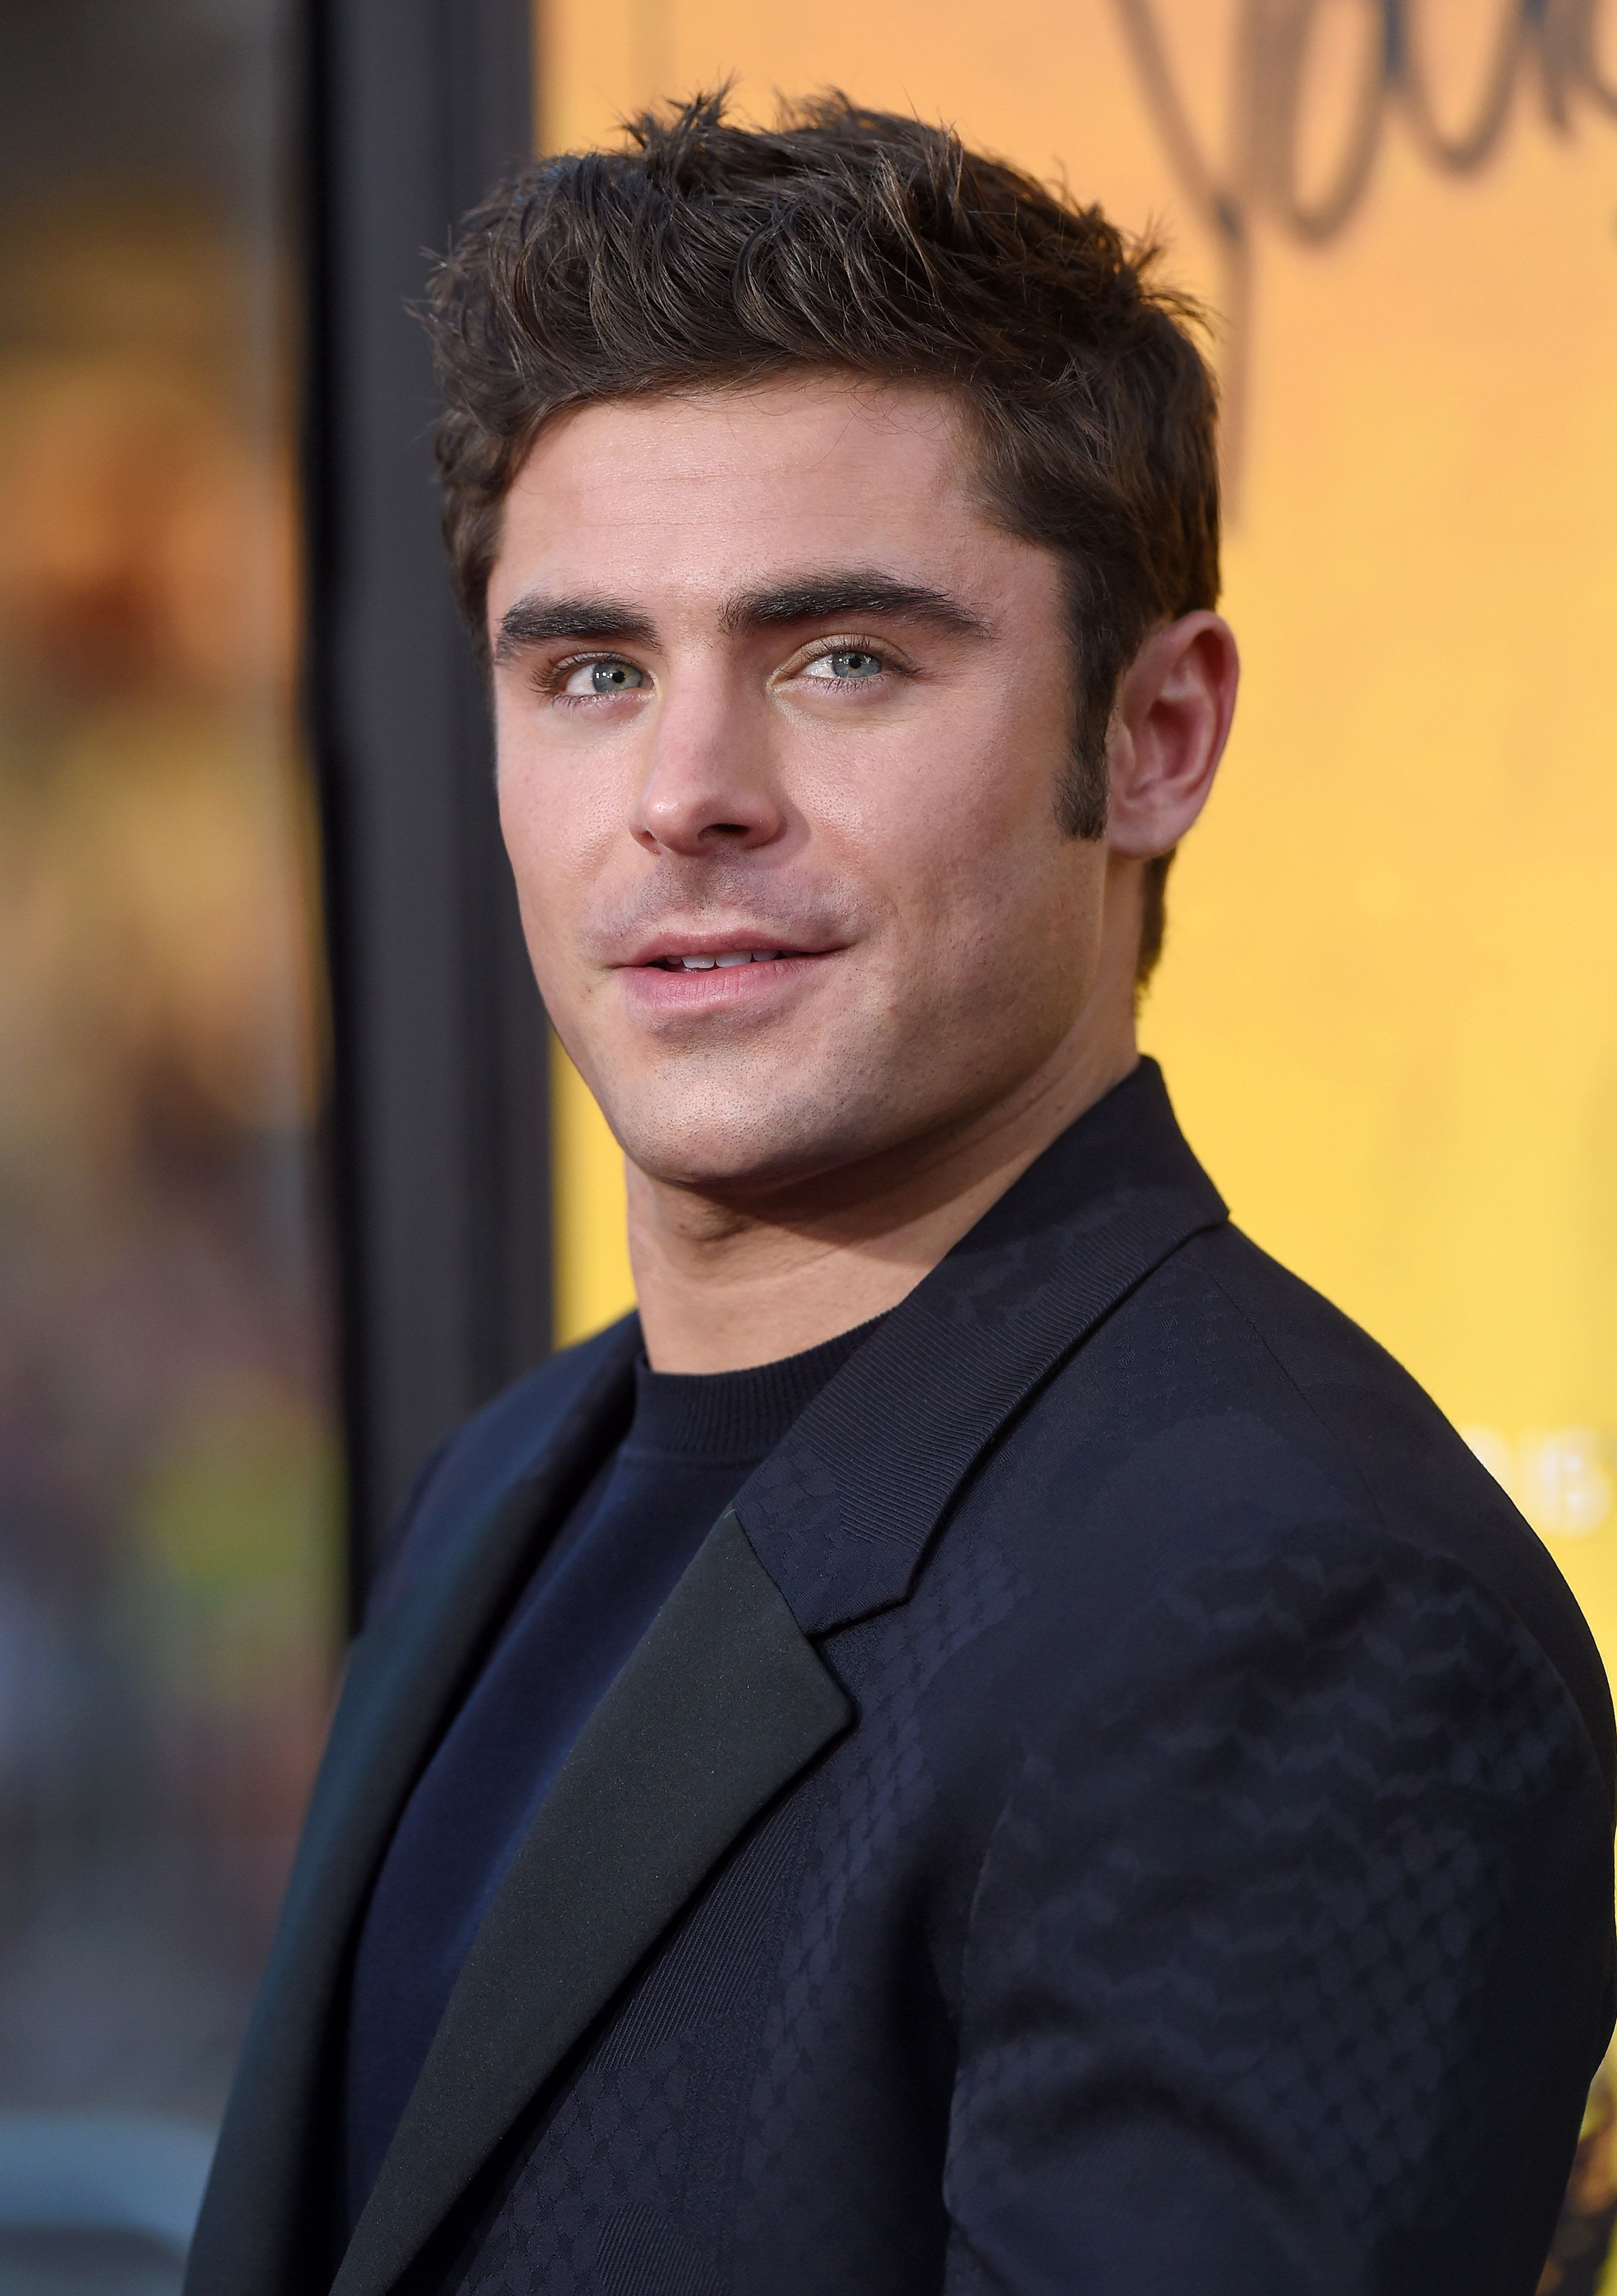 HOLLYWOOD, CA - AUGUST 20:  Actor Zac Efron arrives at the premiere of Warner Bros. Pictures' 'We Are Your Friends' at TCL Chinese Theatre on August 20, 2015 in Hollywood, California.  (Photo by Axelle/Bauer-Griffin/FilmMagic)